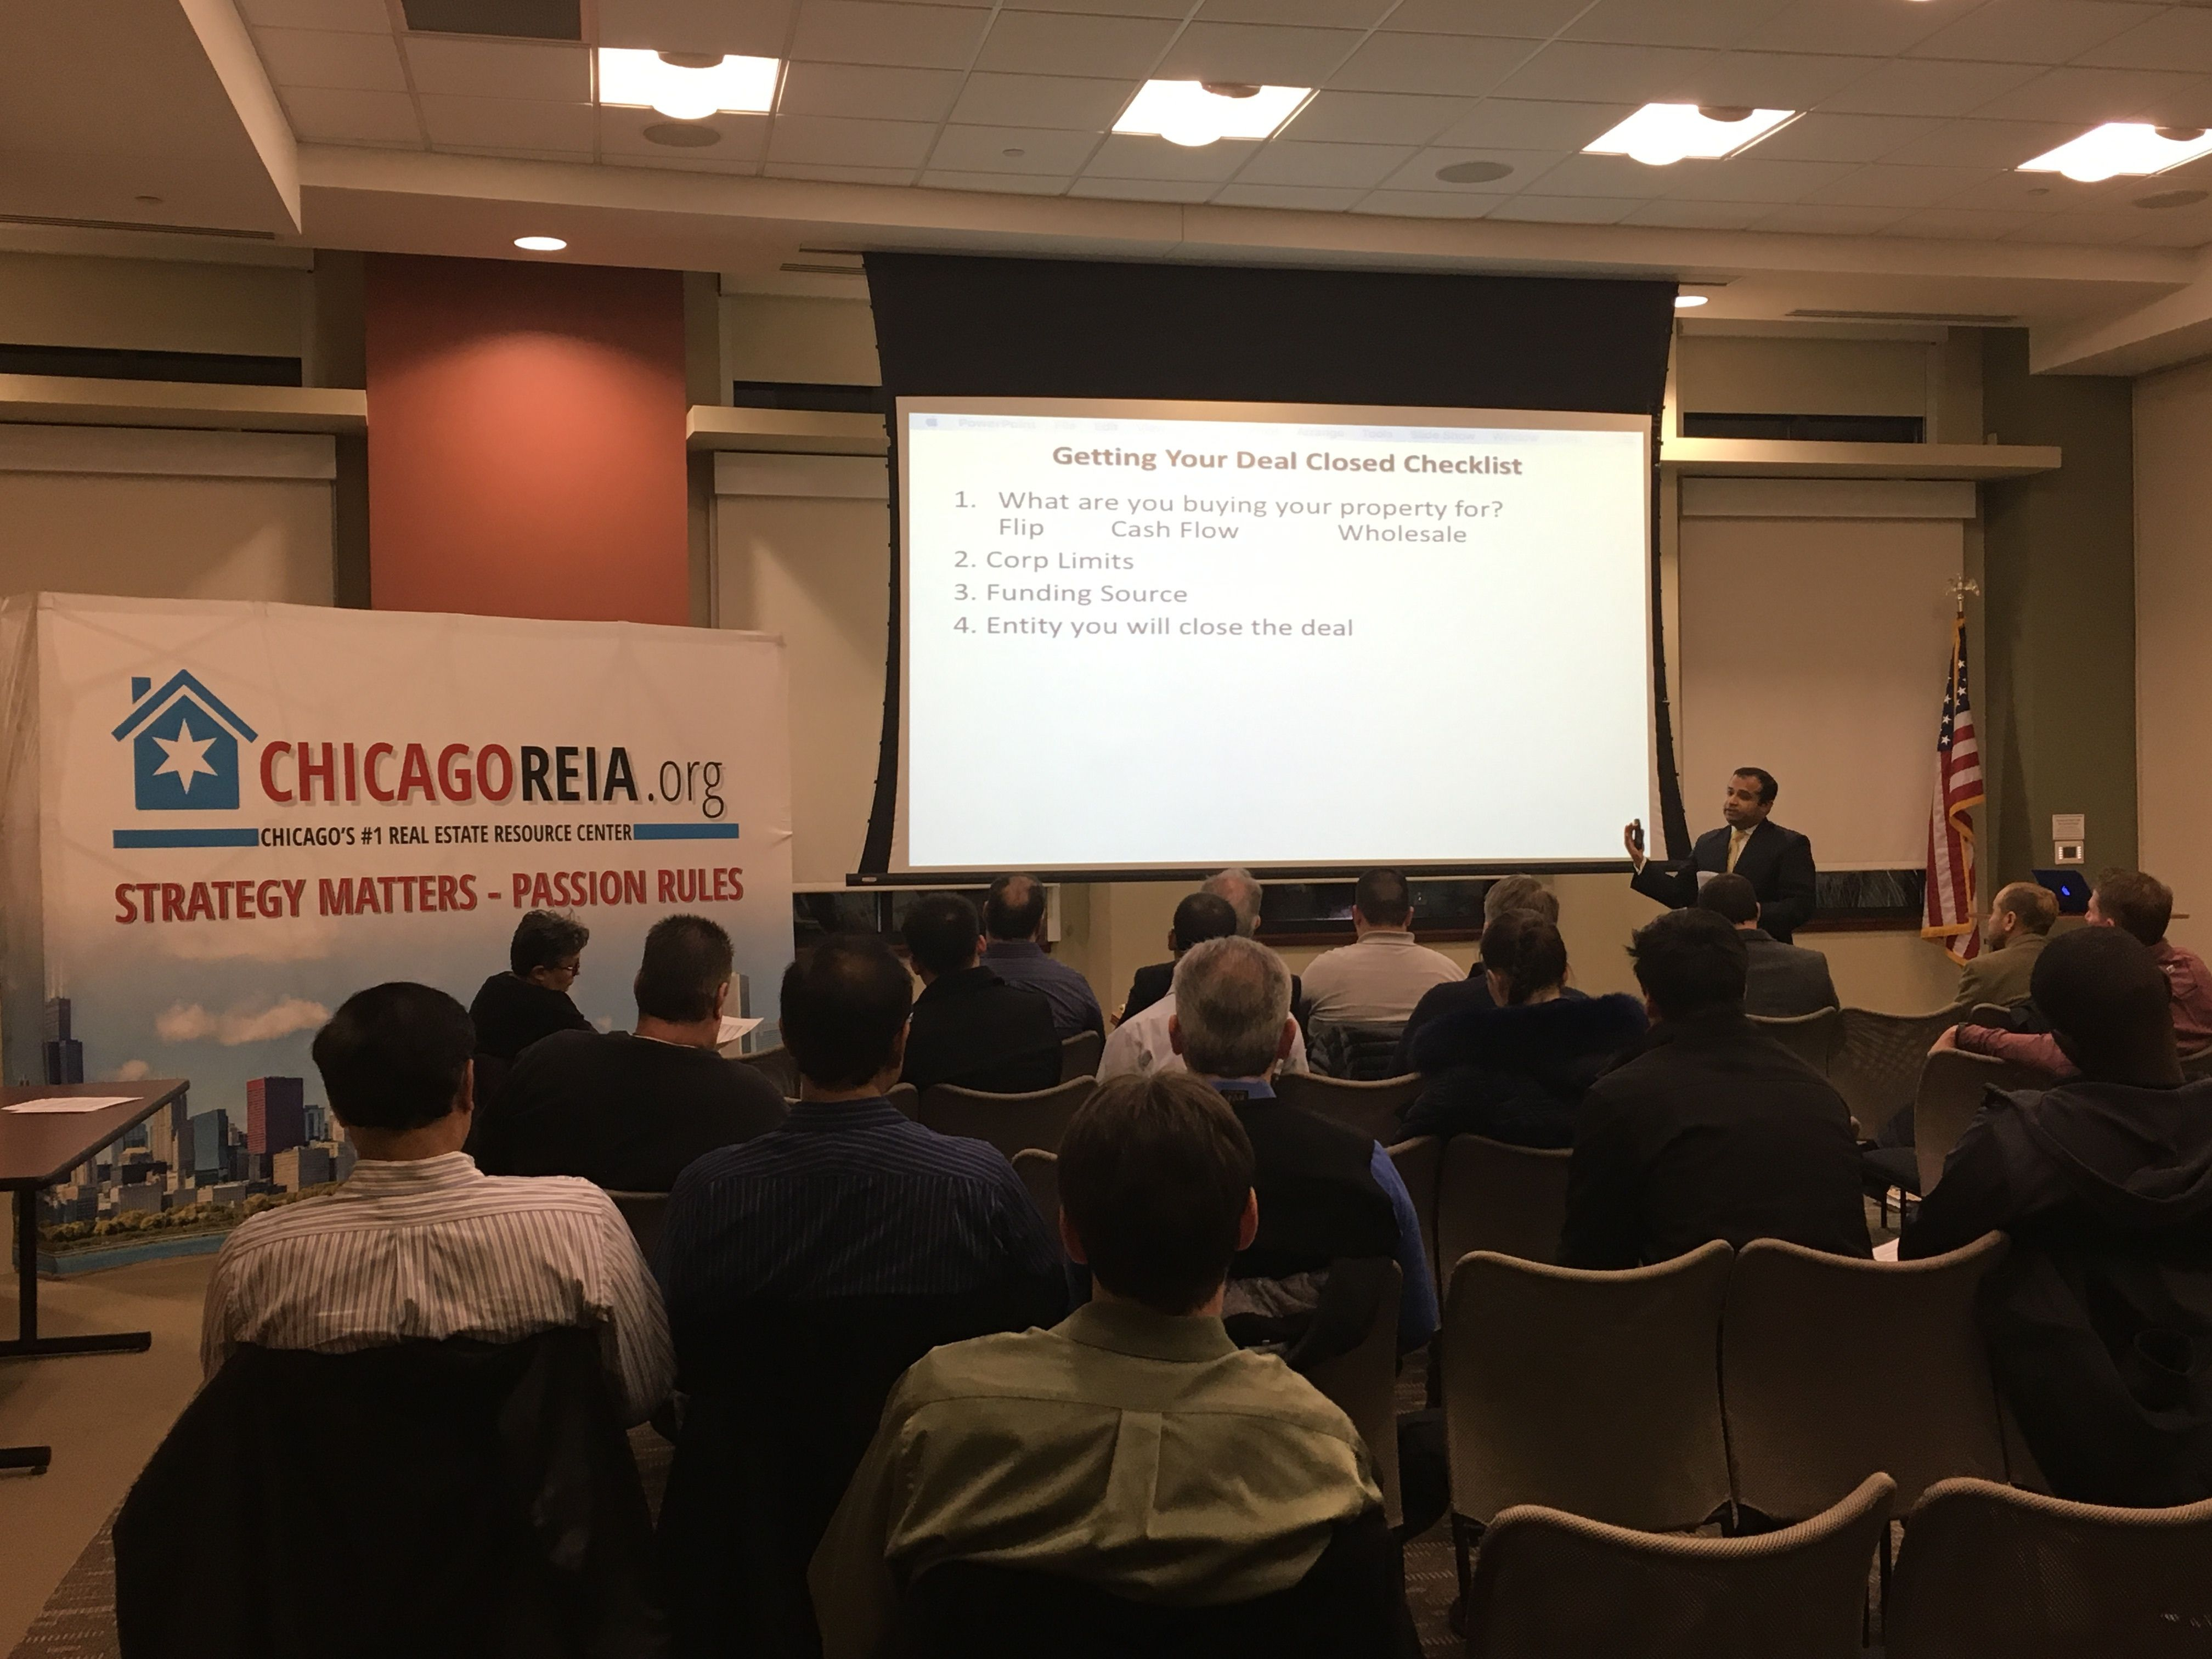 Chicago Real Estate Investors Association - Downtown